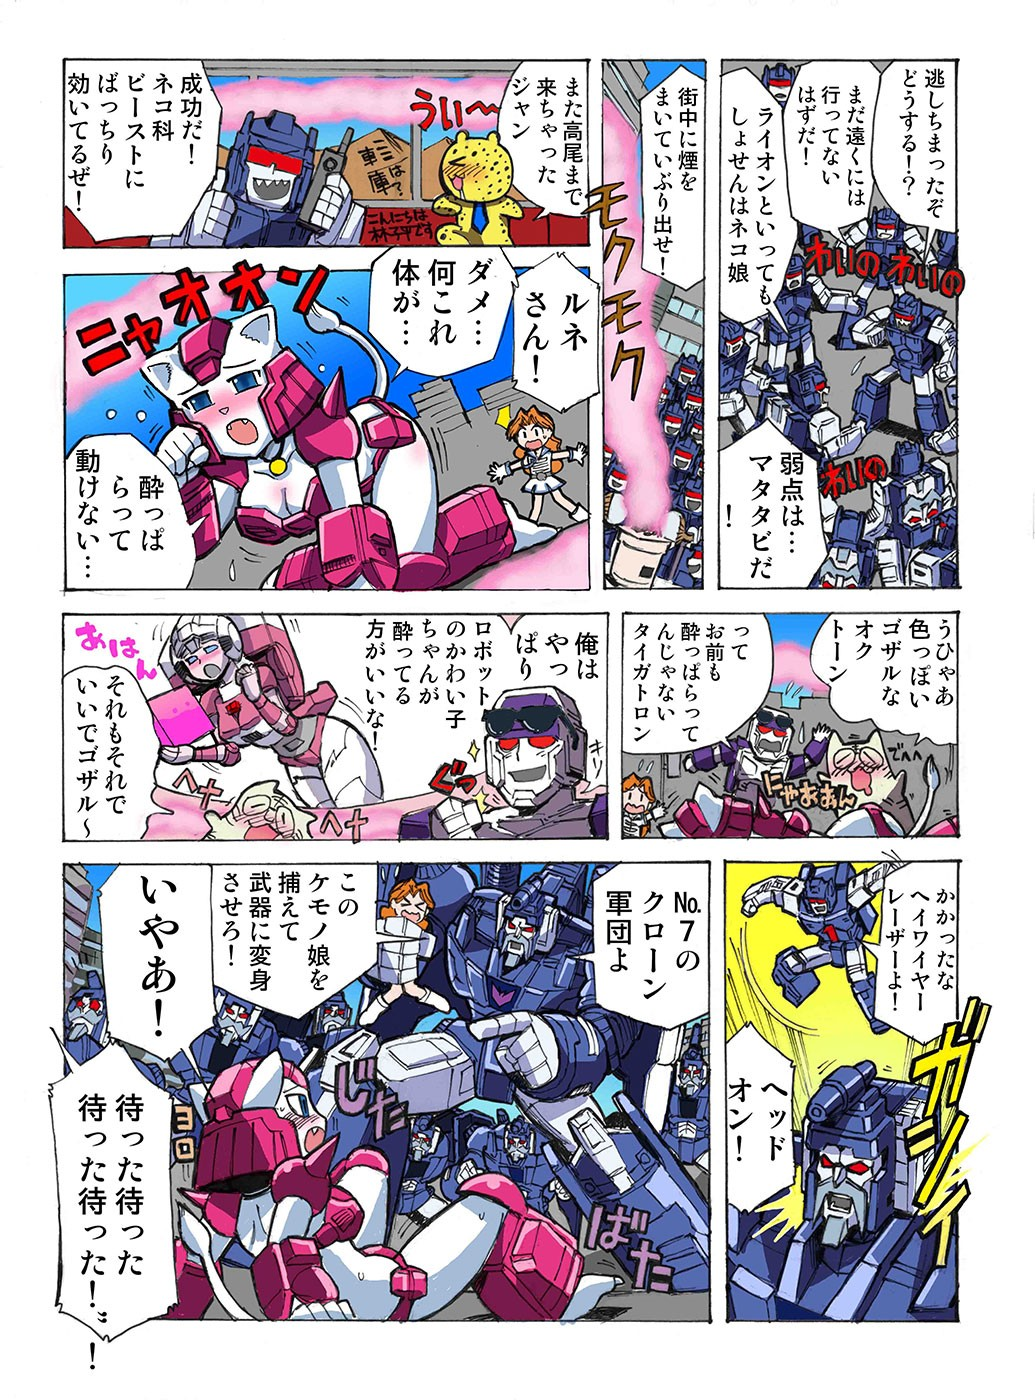 Transformers News: Takara Tomy Transformers Legends #48 Christmas Special Manga Now Online